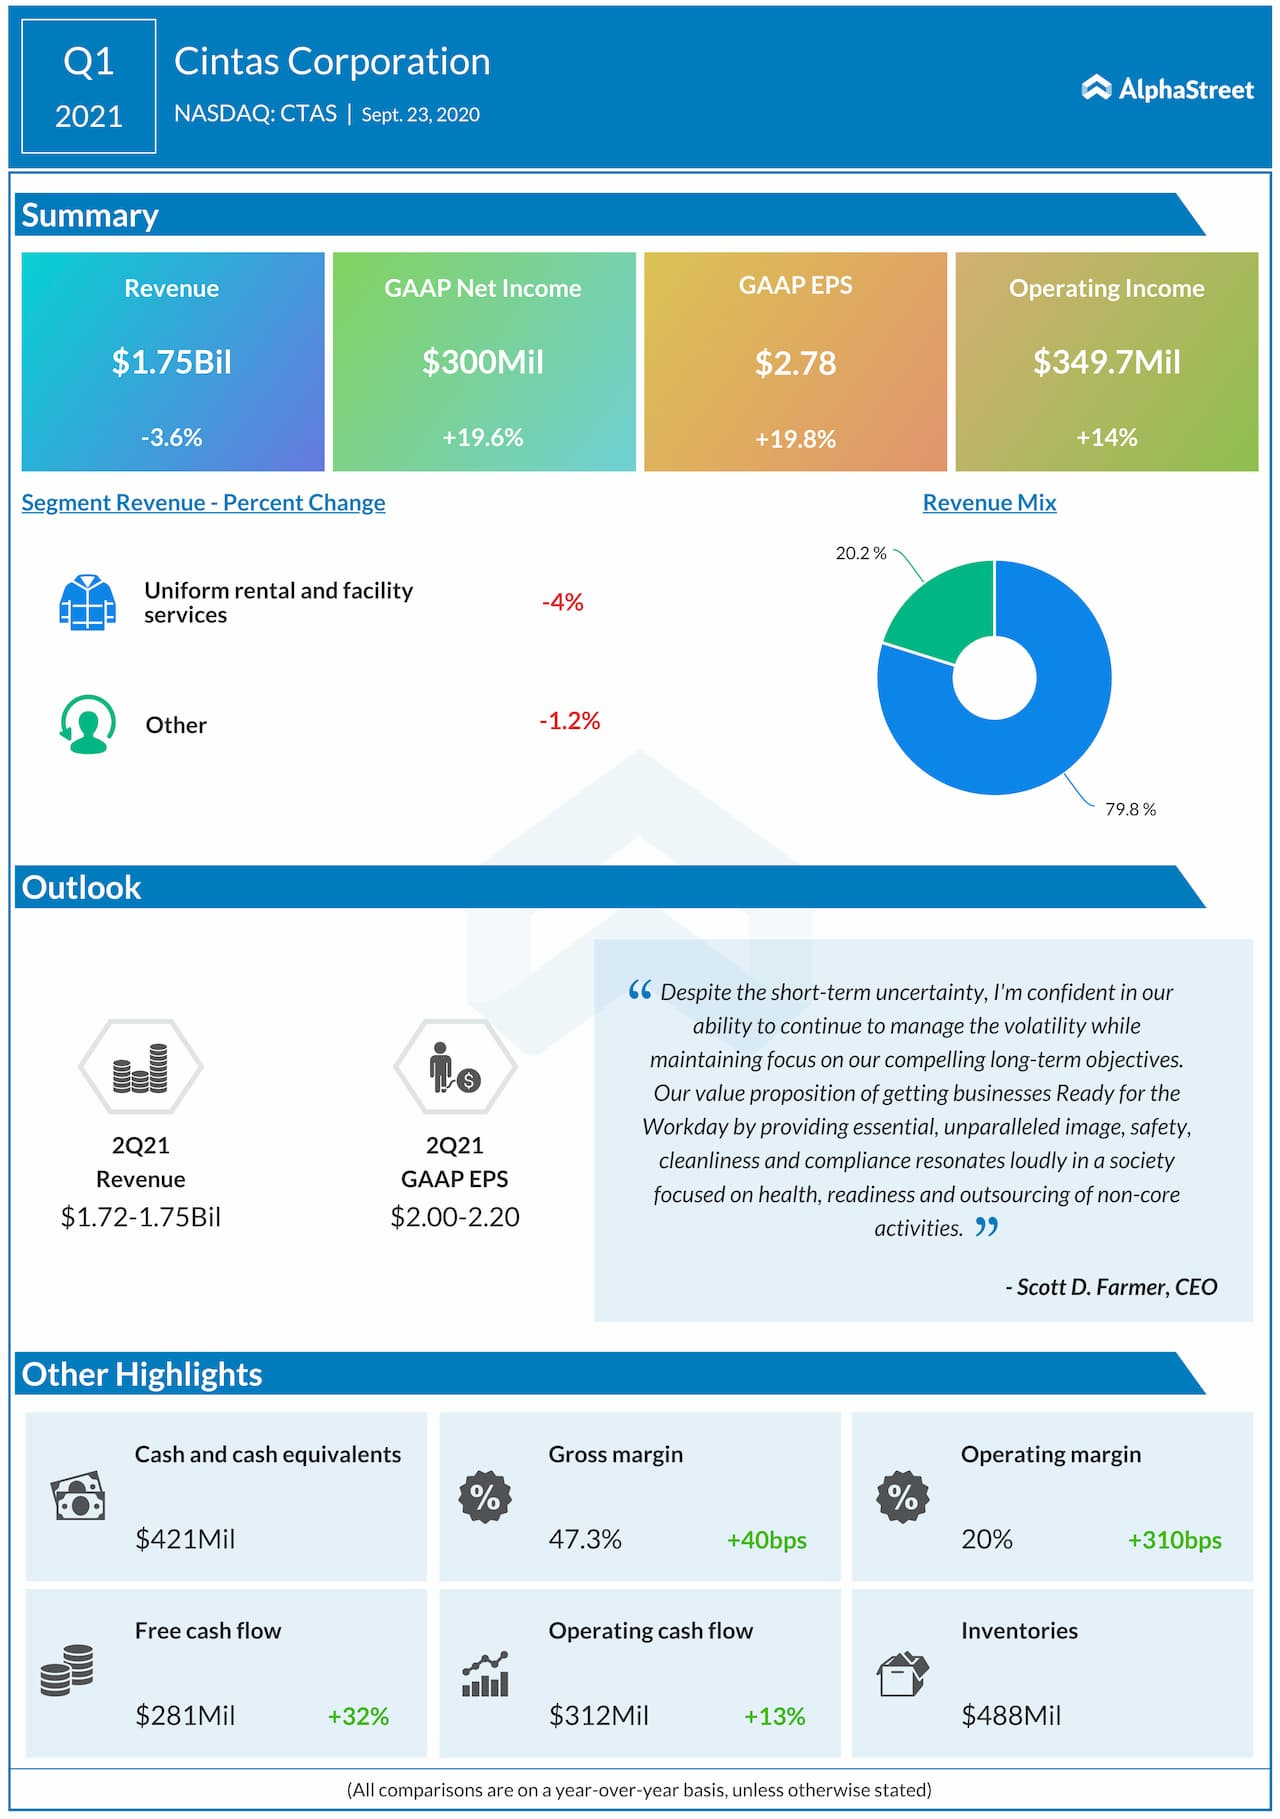 Cintas reports Q1 2021 earnings results